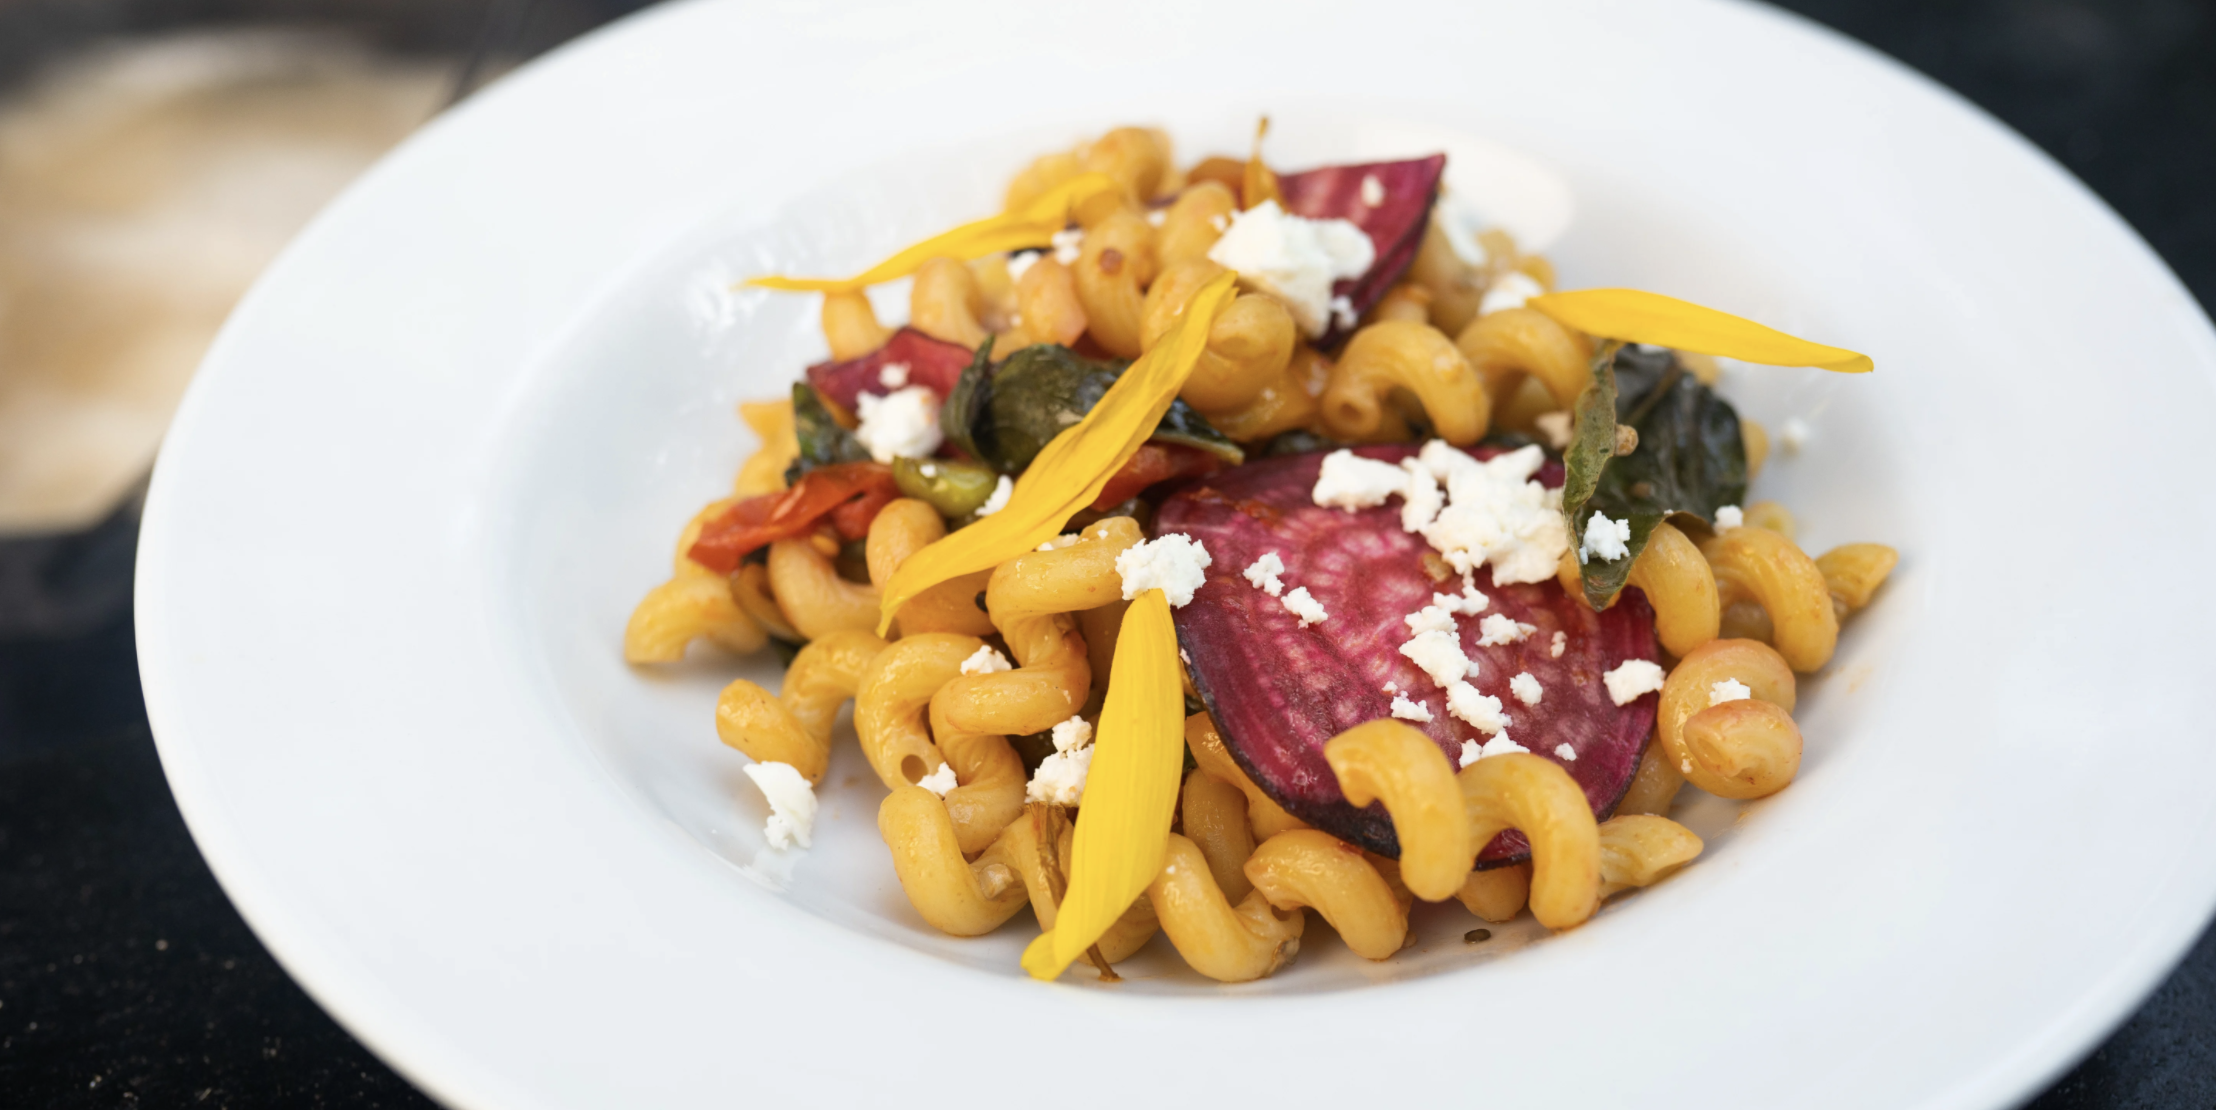 Trending Now: The hottest pasta concepts and flavors